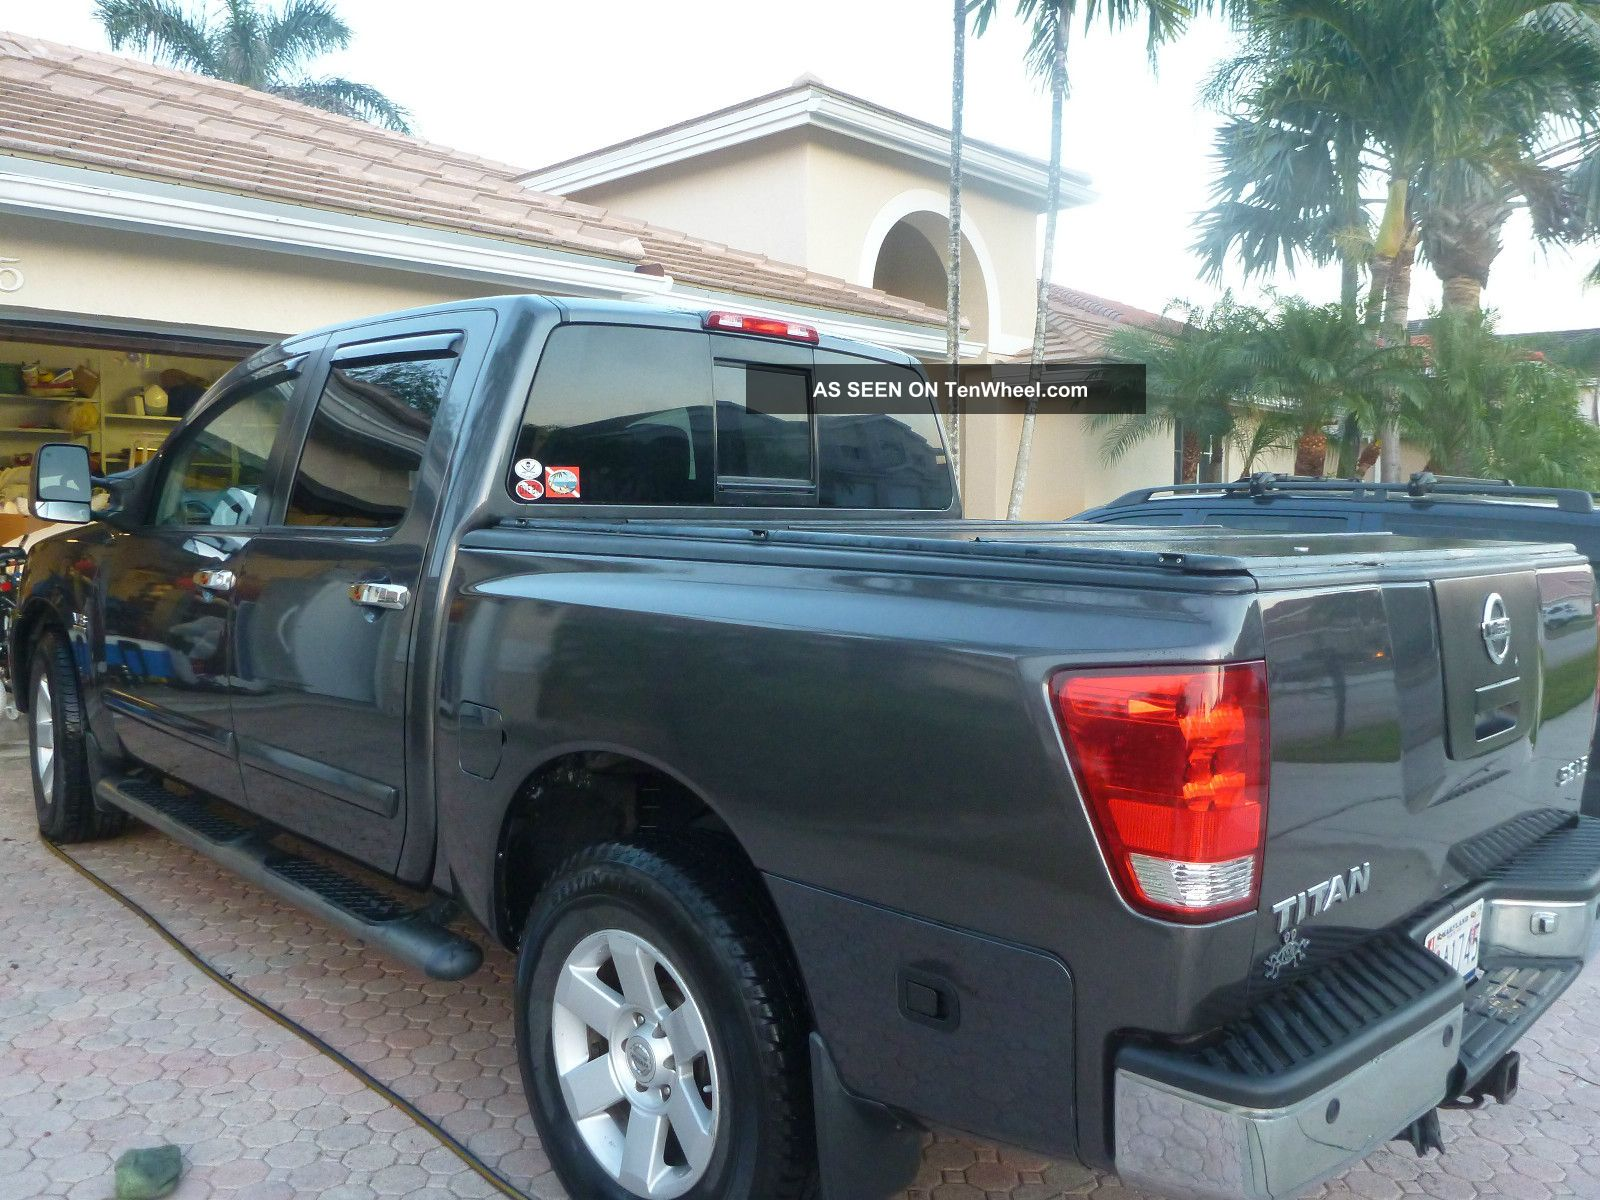 2004 nissan titan le 4x4 with big tow package. Black Bedroom Furniture Sets. Home Design Ideas